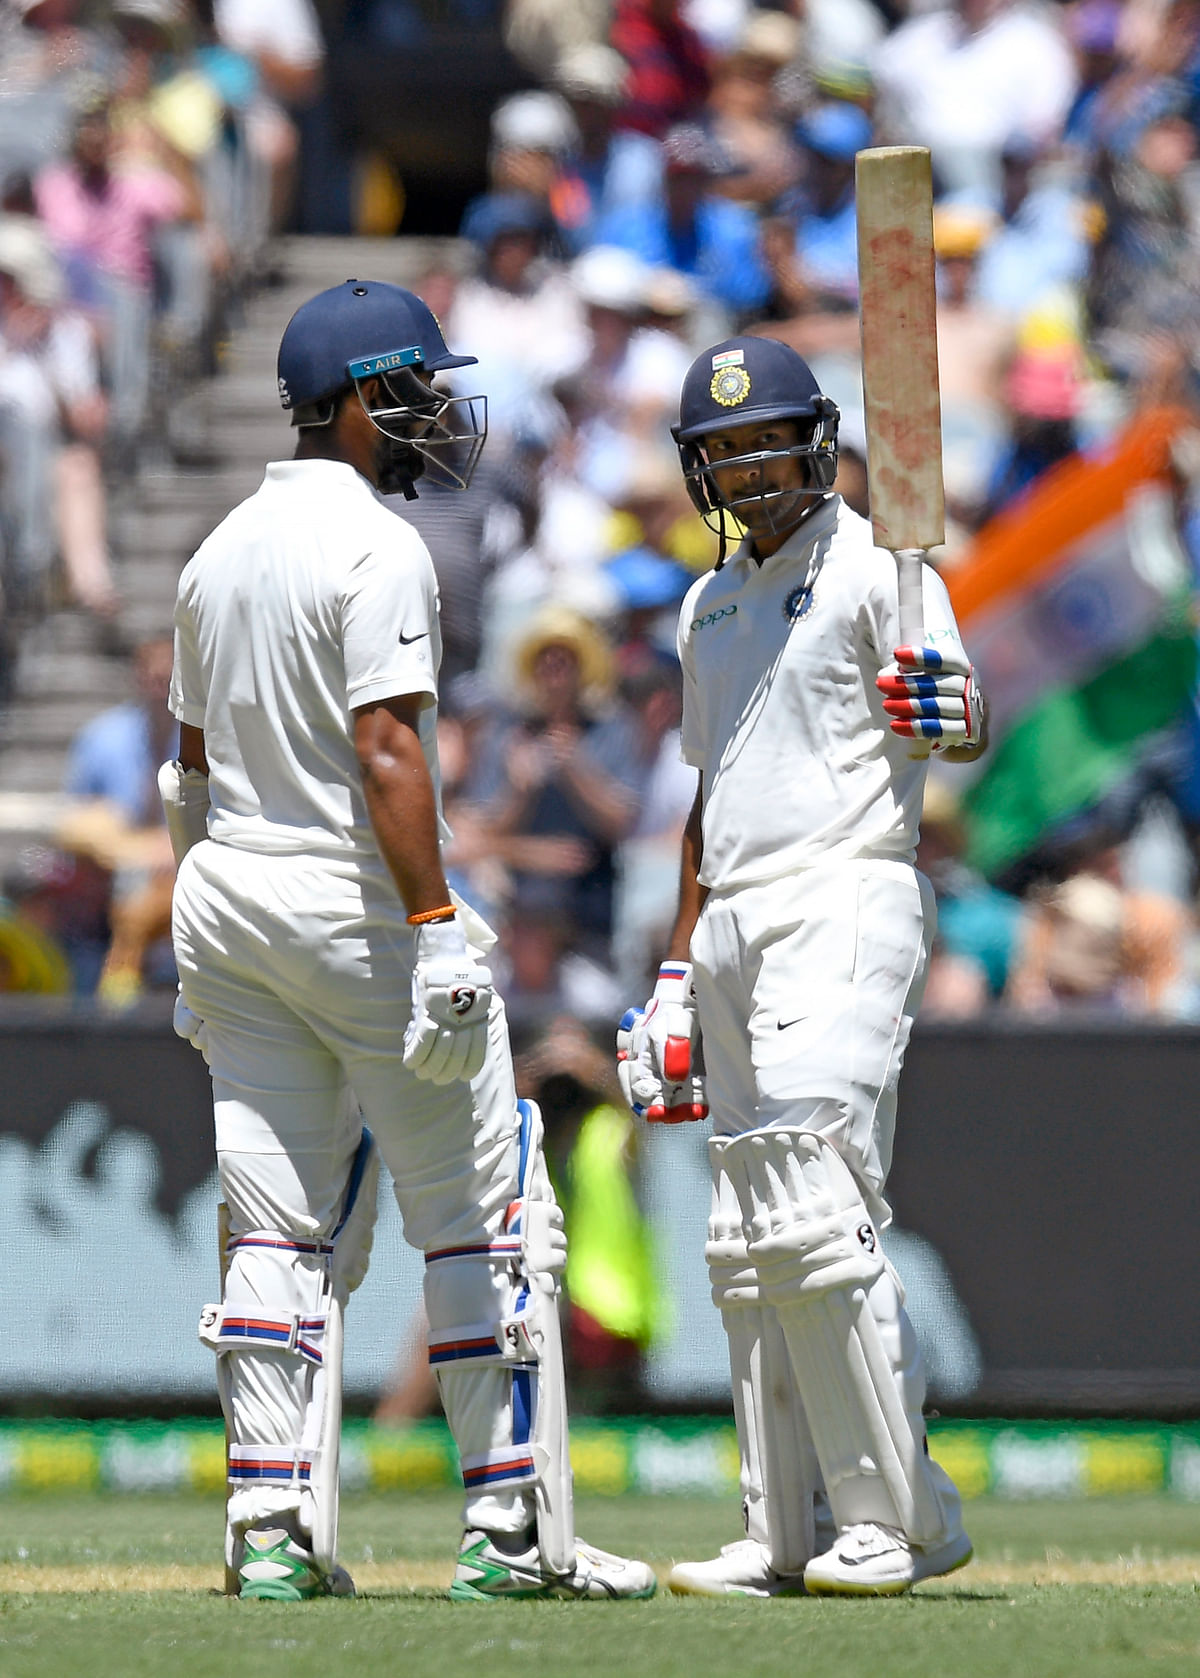 India's Mayank Agarwal, right celebrates with team mate, left Cheteshwar Pujara after scoring a half century on day one of the third cricket test between India and Australia in Melbourne, Australia, Wednesday, Dec. 26, 2018.